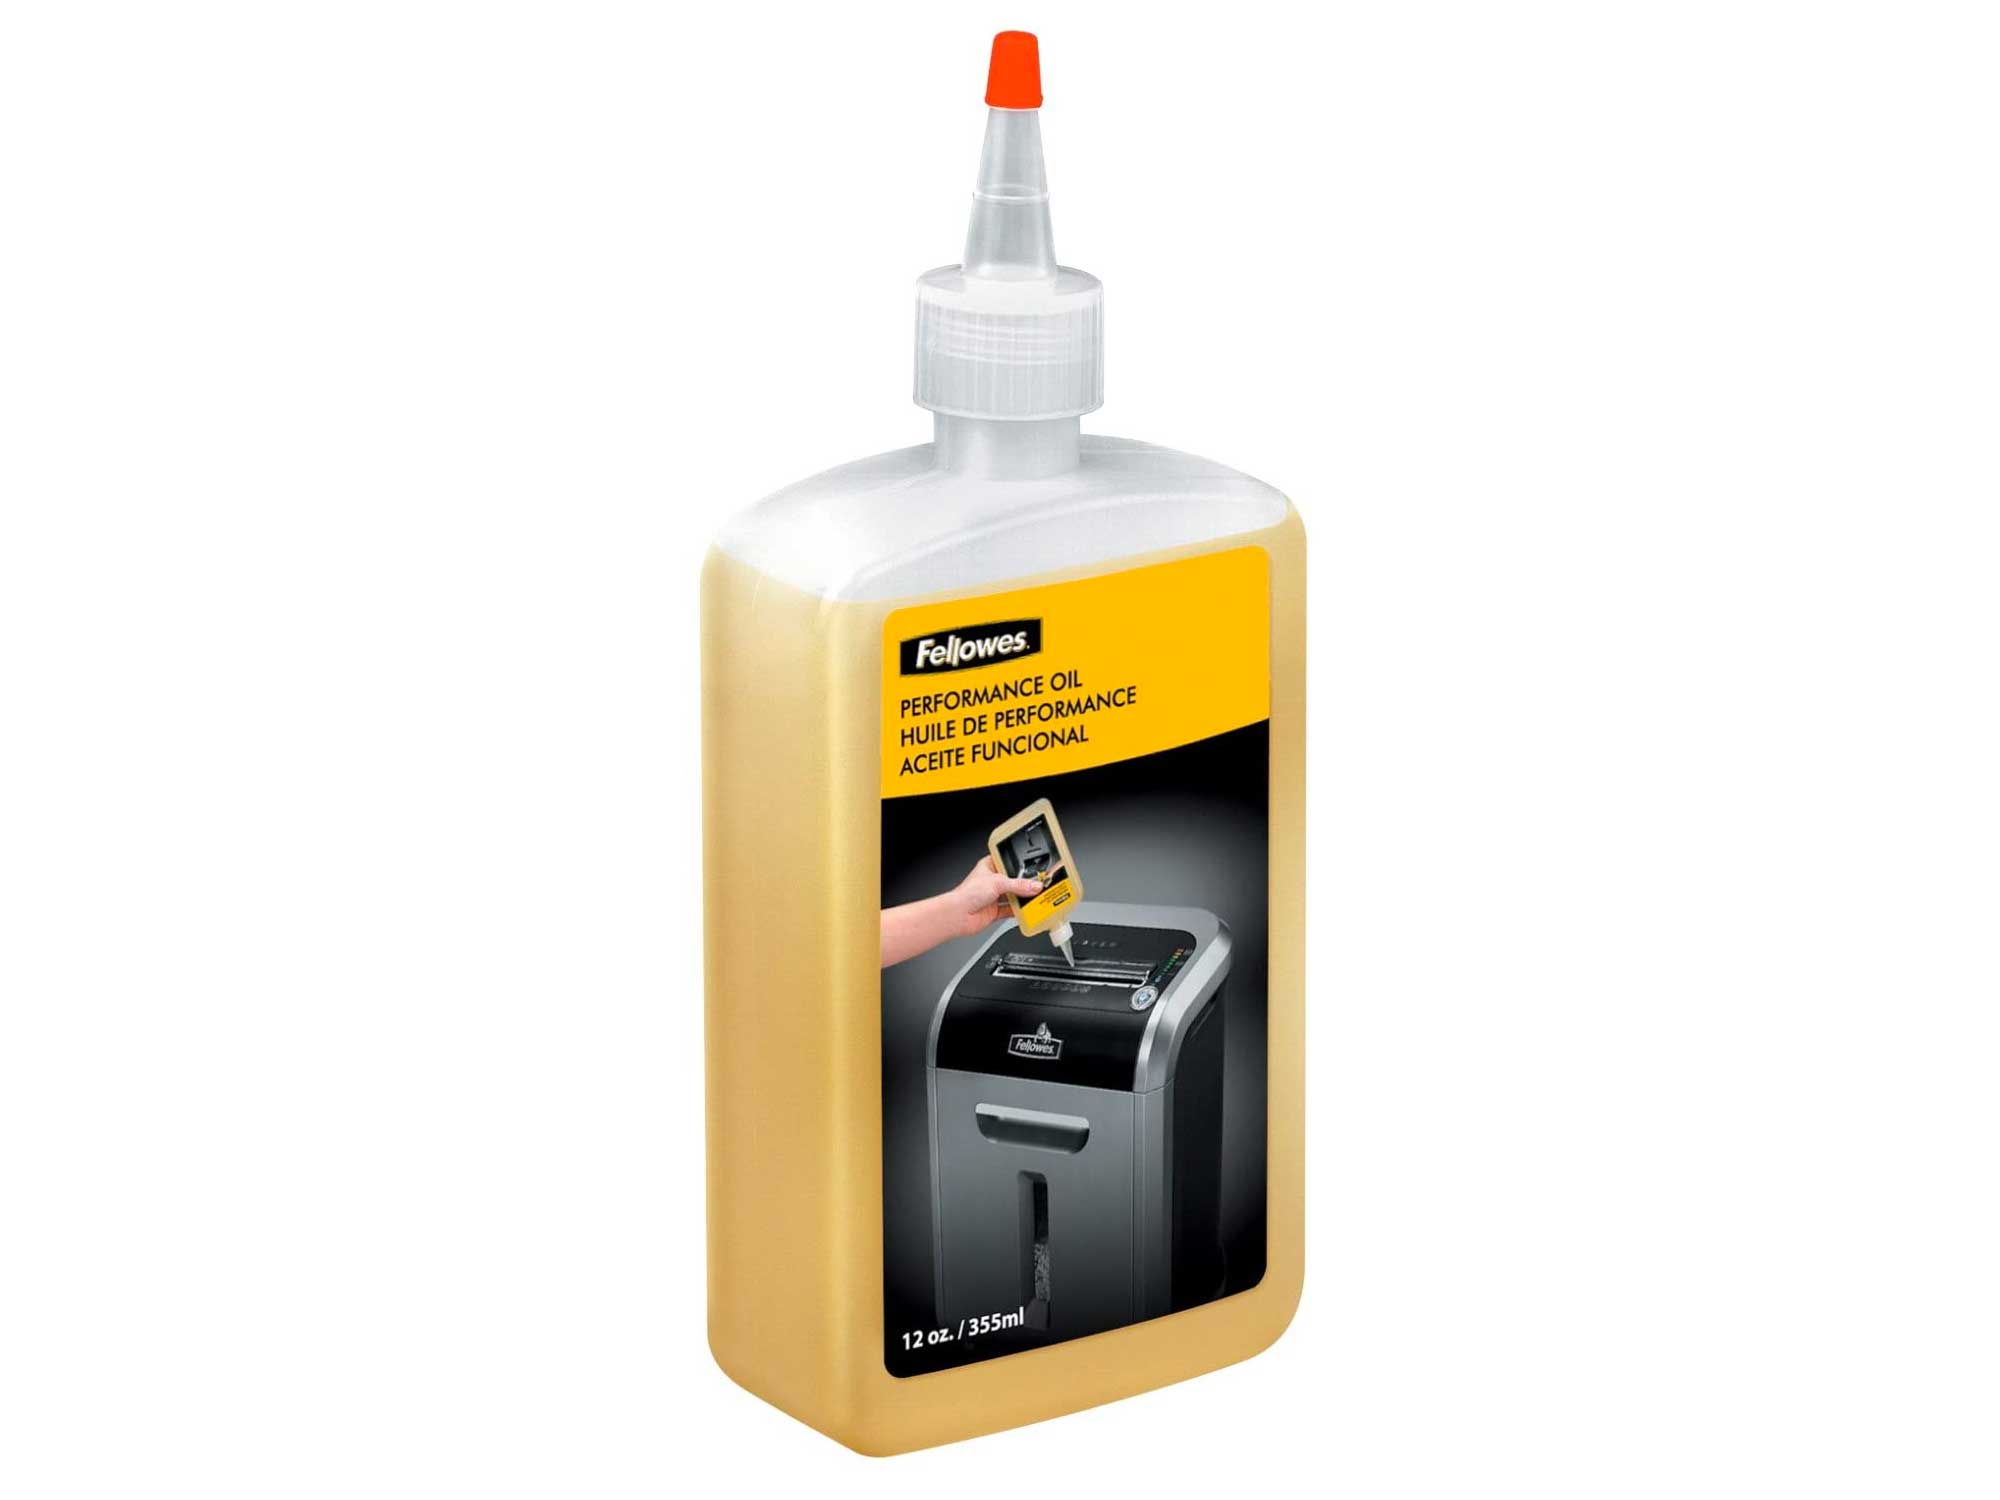 Fellowes Powershred Performance Oil, 12 oz. Bottle w/Extension Nozzle